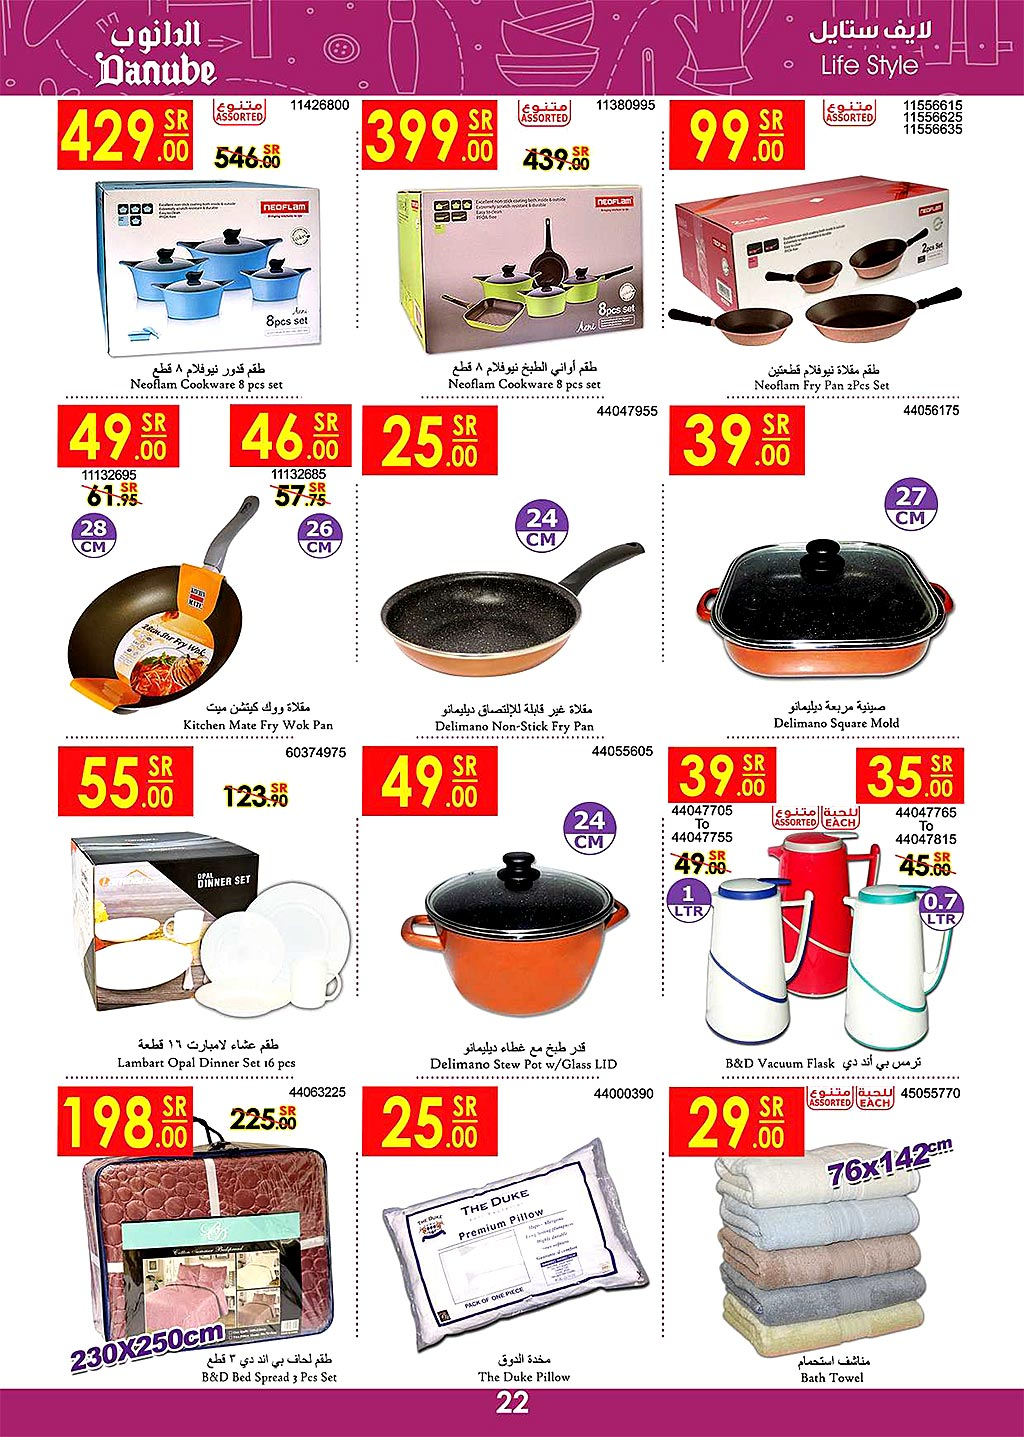 danube offers from 12june to 18june 2019 page number 22 عروض الدانوب من 12 يونيو حتى 18 يونيو 2019 صفحة رقم 22